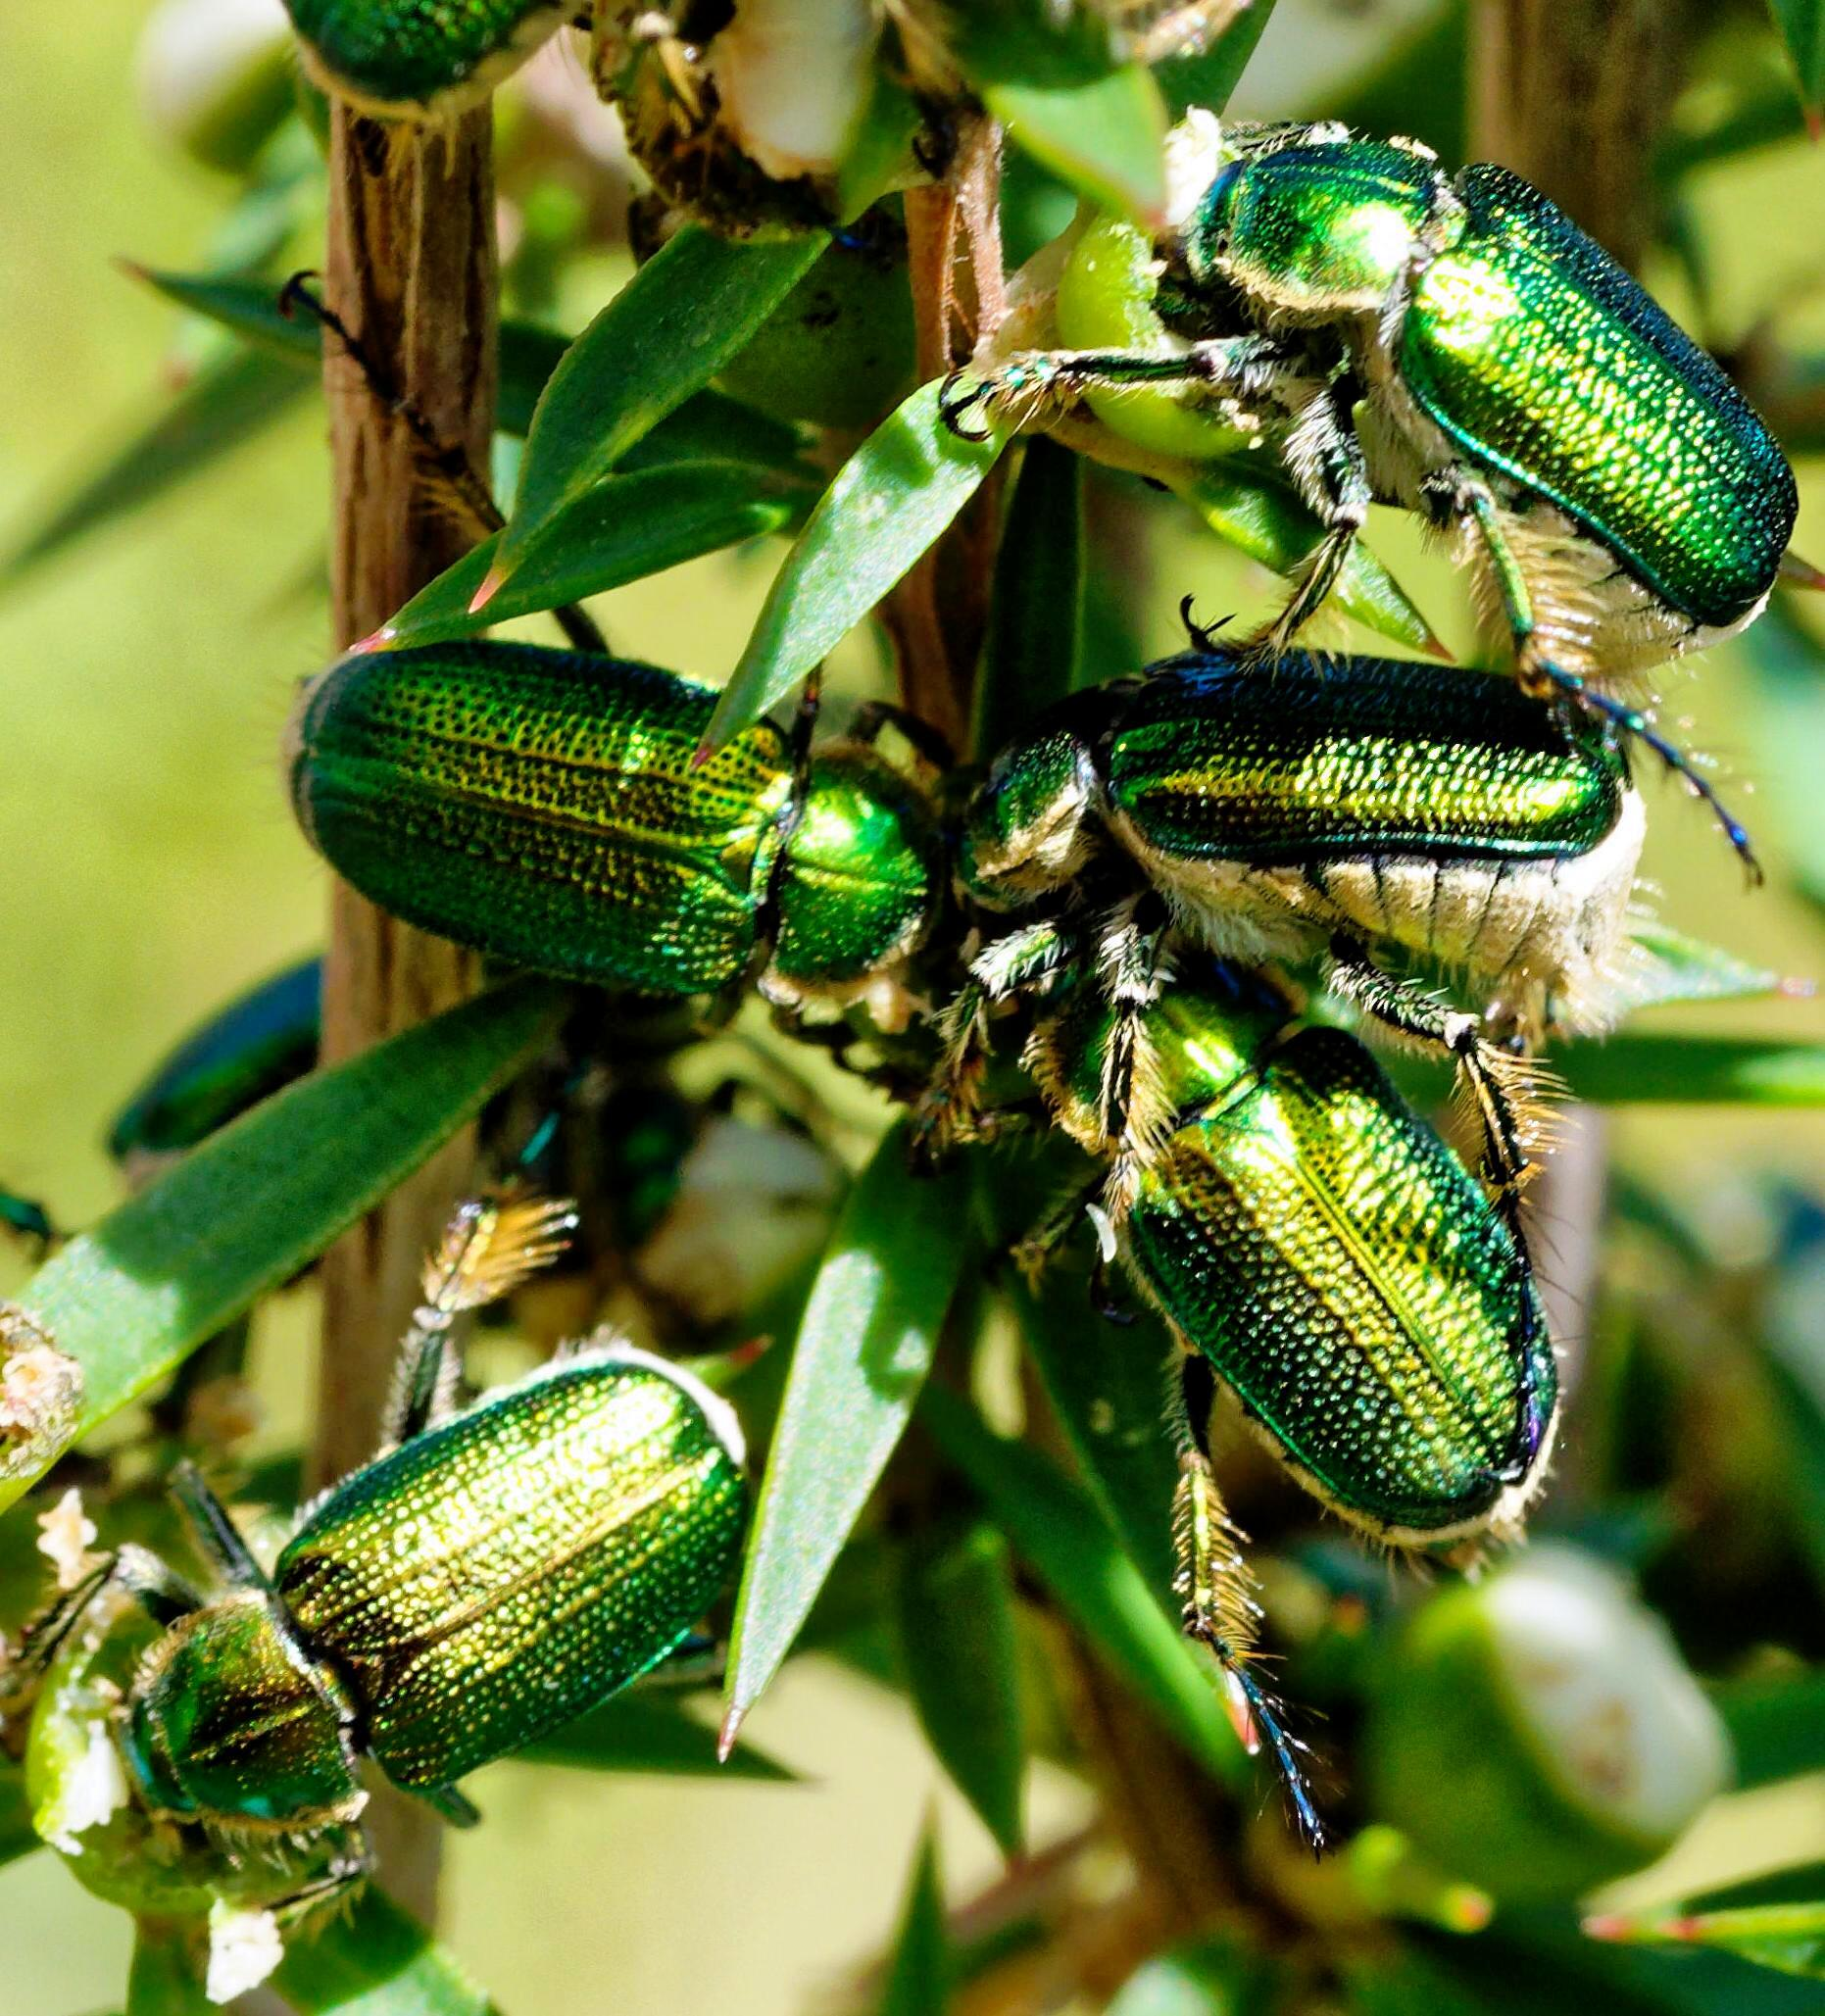 Beetles-12-detail.jpeg